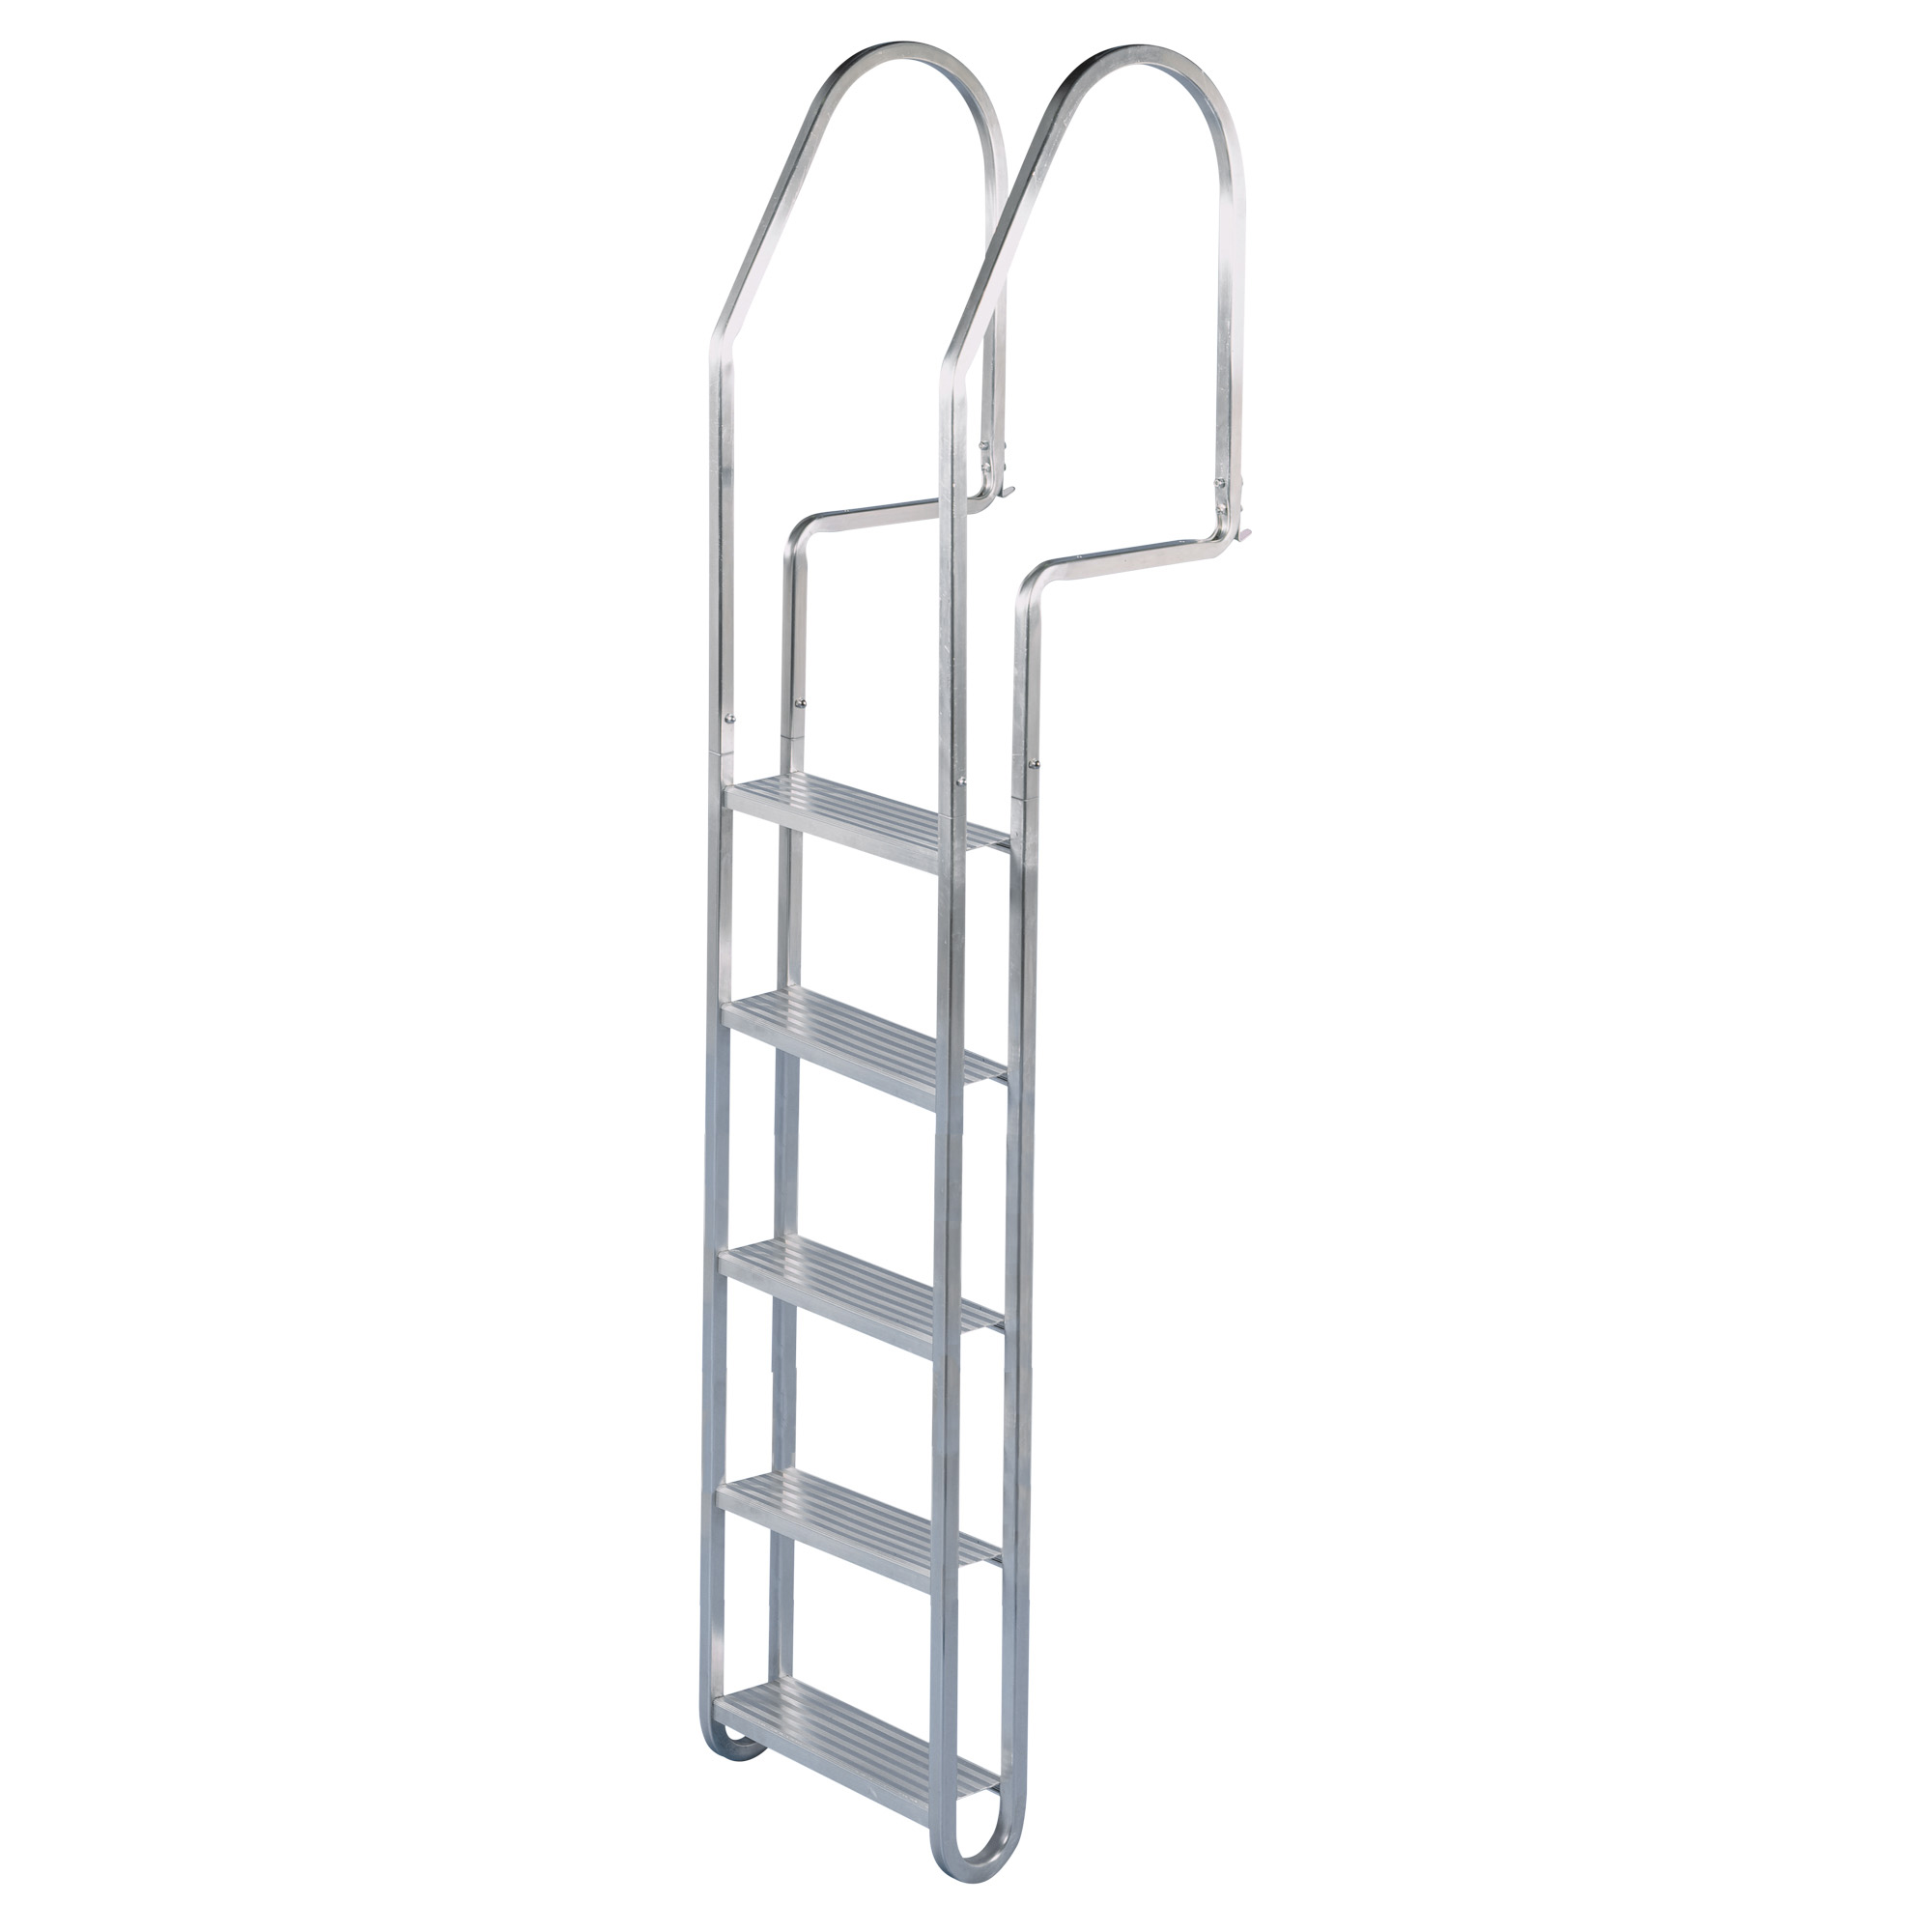 Dock Edge Aluminum Dock Ladder | Camping World